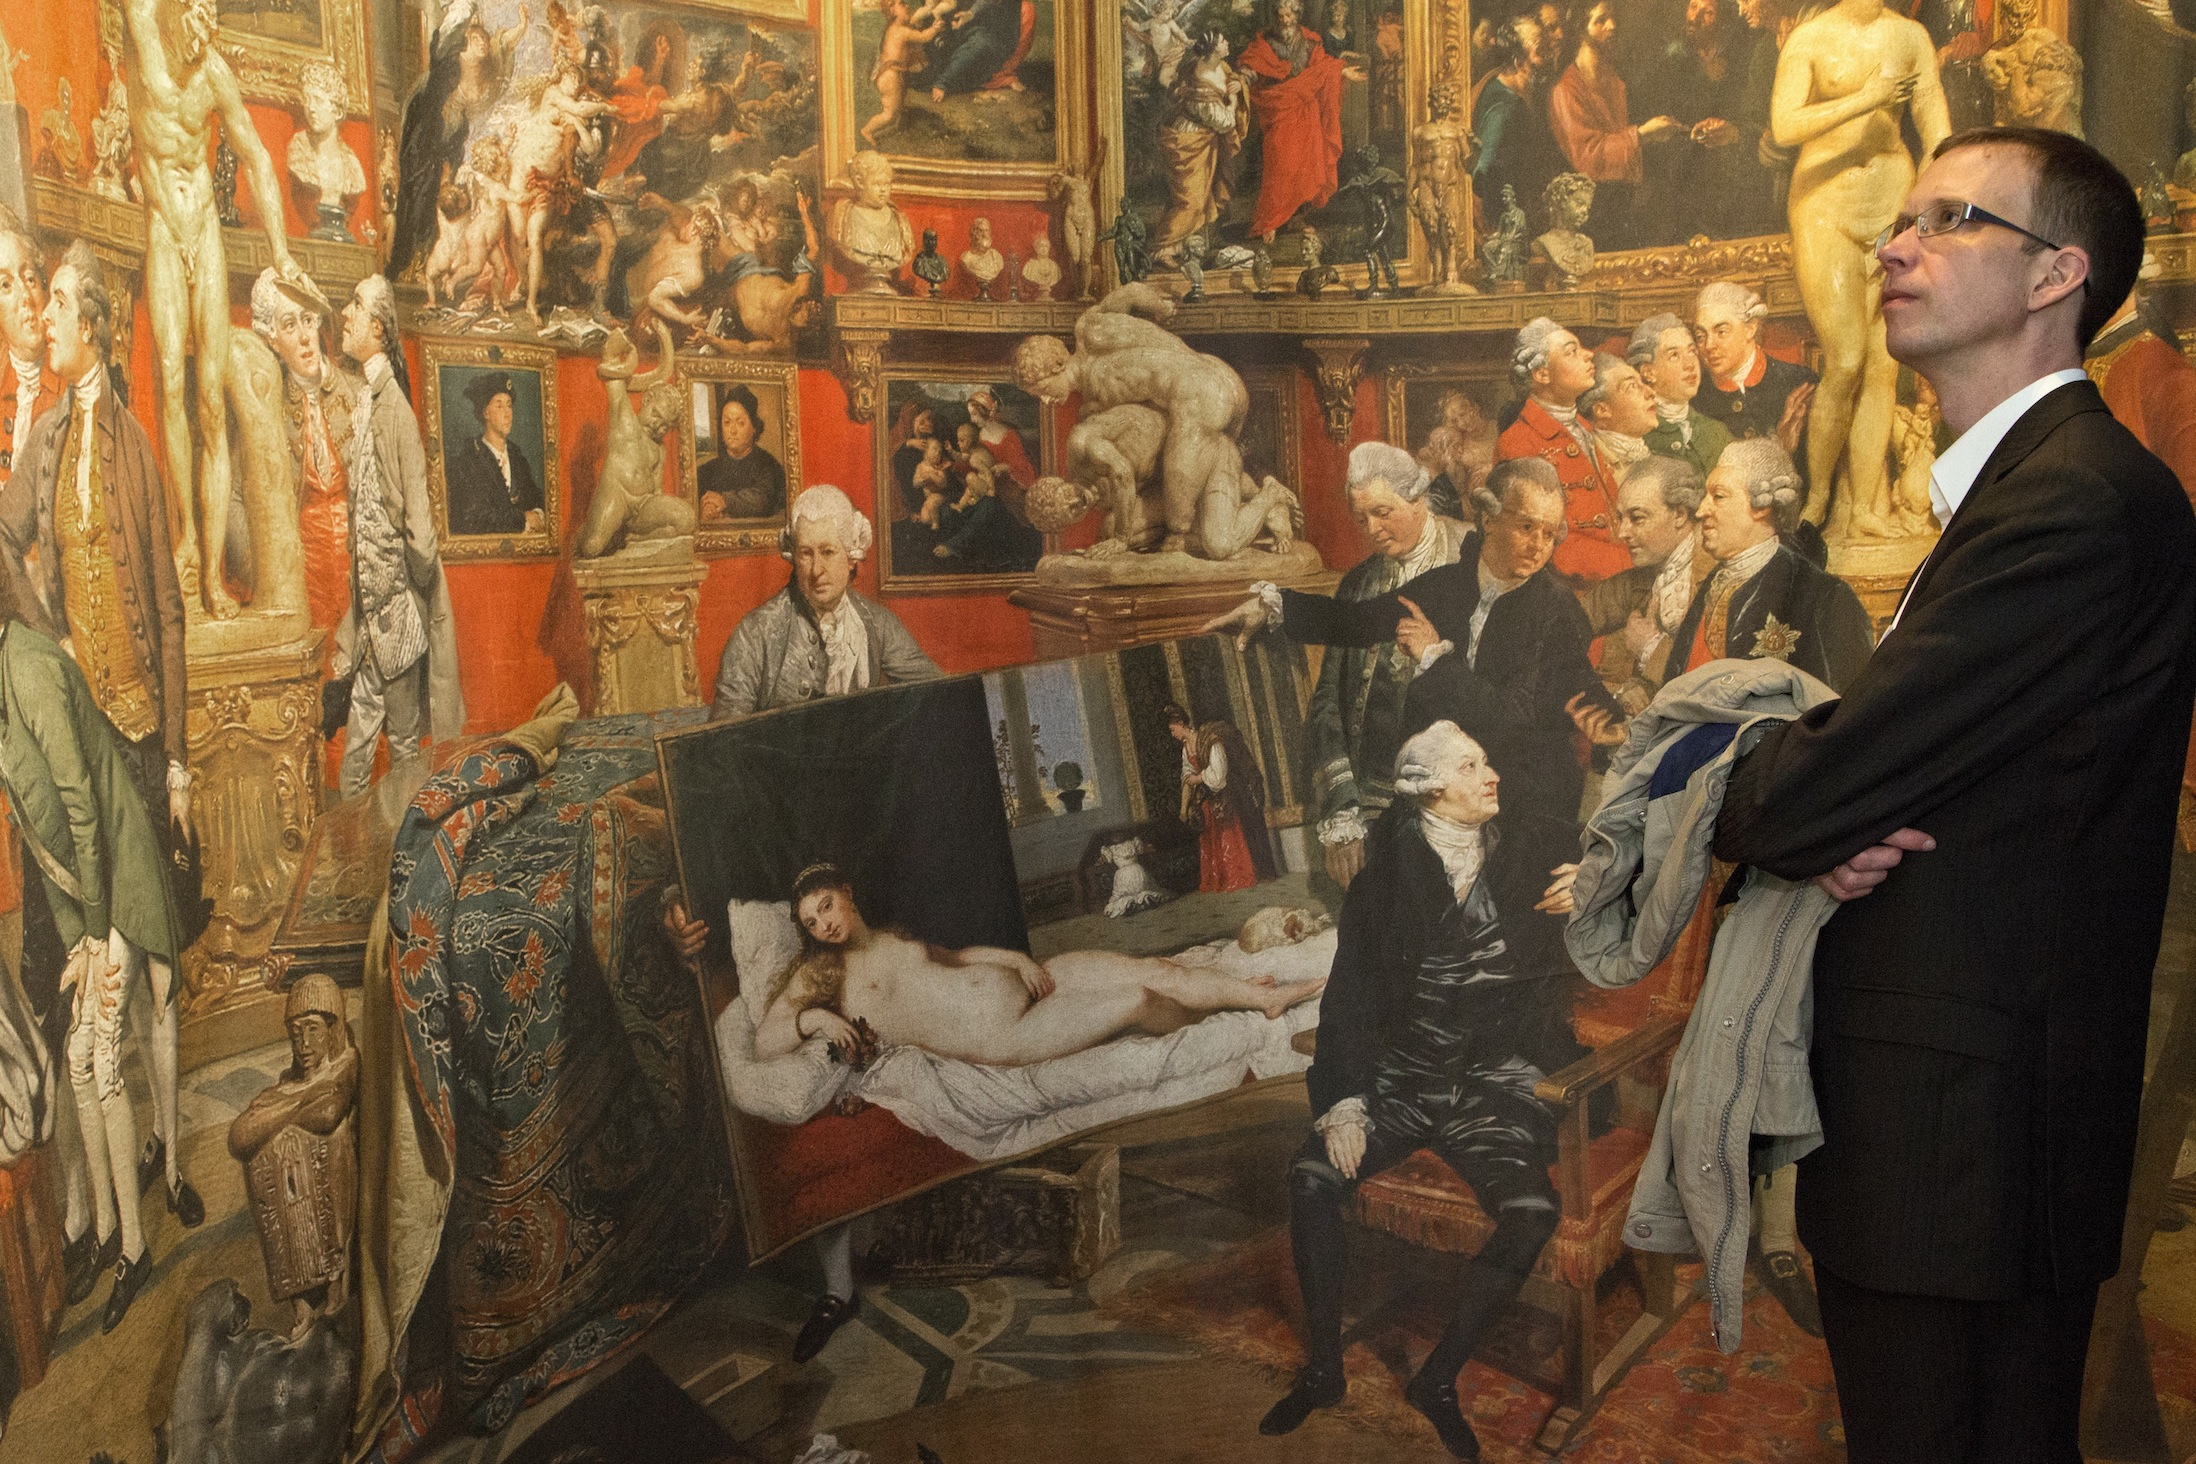 Fig. 6 Inside the Wallmoden exhibition, visitor next to an enlarged reproduction of Zoffany's painting of the Tribuna